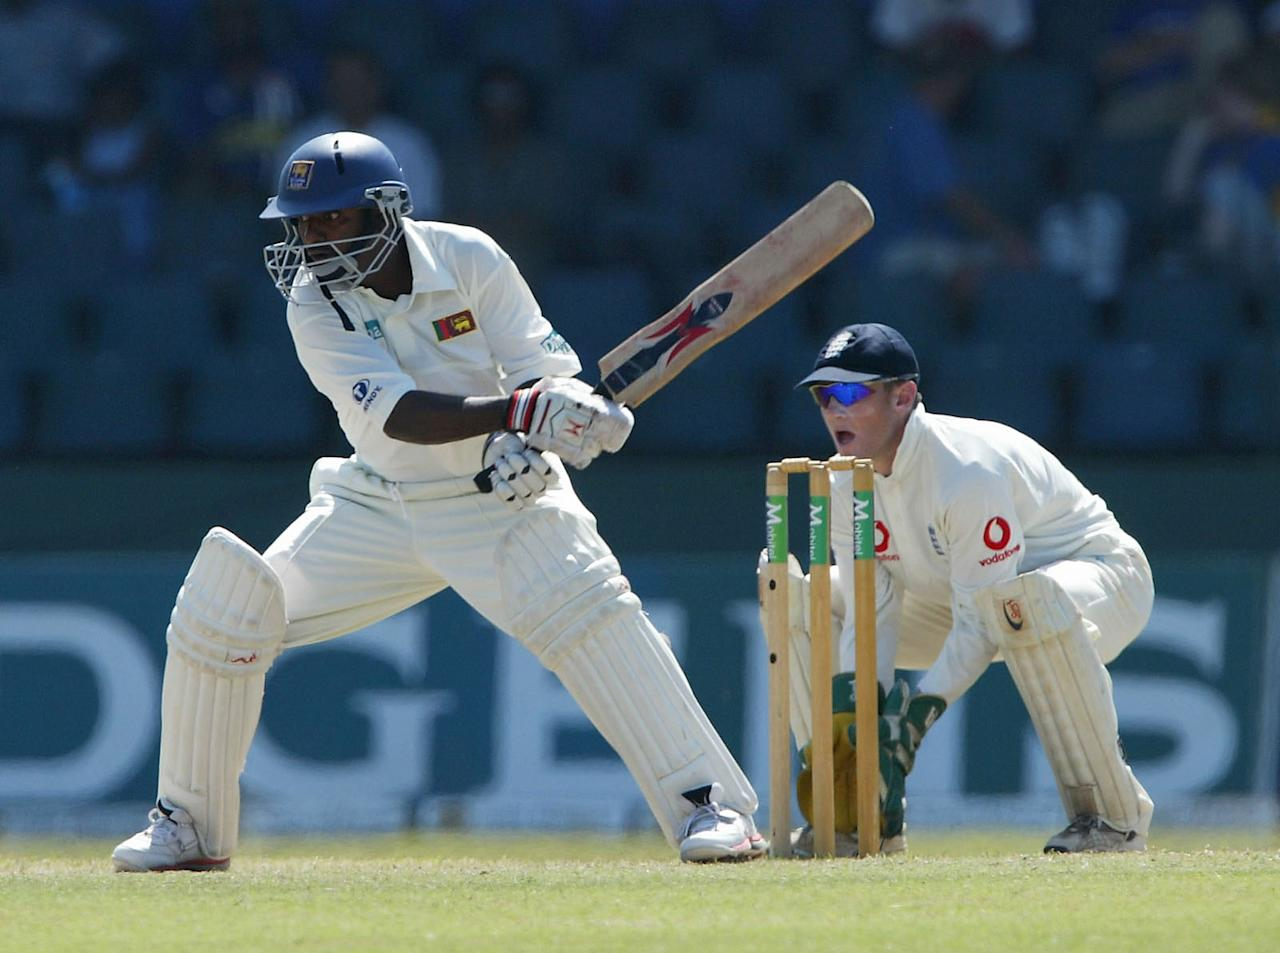 COLOMBO, SRI LANKA - DECEMBER 21:  Sri Lankan batsman Muttiah Muralitharan plays a reverse sweep watched by England wicketkeeper Chris Read during the fourth day of the third test between Sri Lanka and England today at The Singhalase Sports Club on December 21, 2003 in Colombo, Sri Lanka. Sri lanka won the match by a record innings and 215 runs to win the series 1-0. (Photo by Stu Forster/Getty Images).